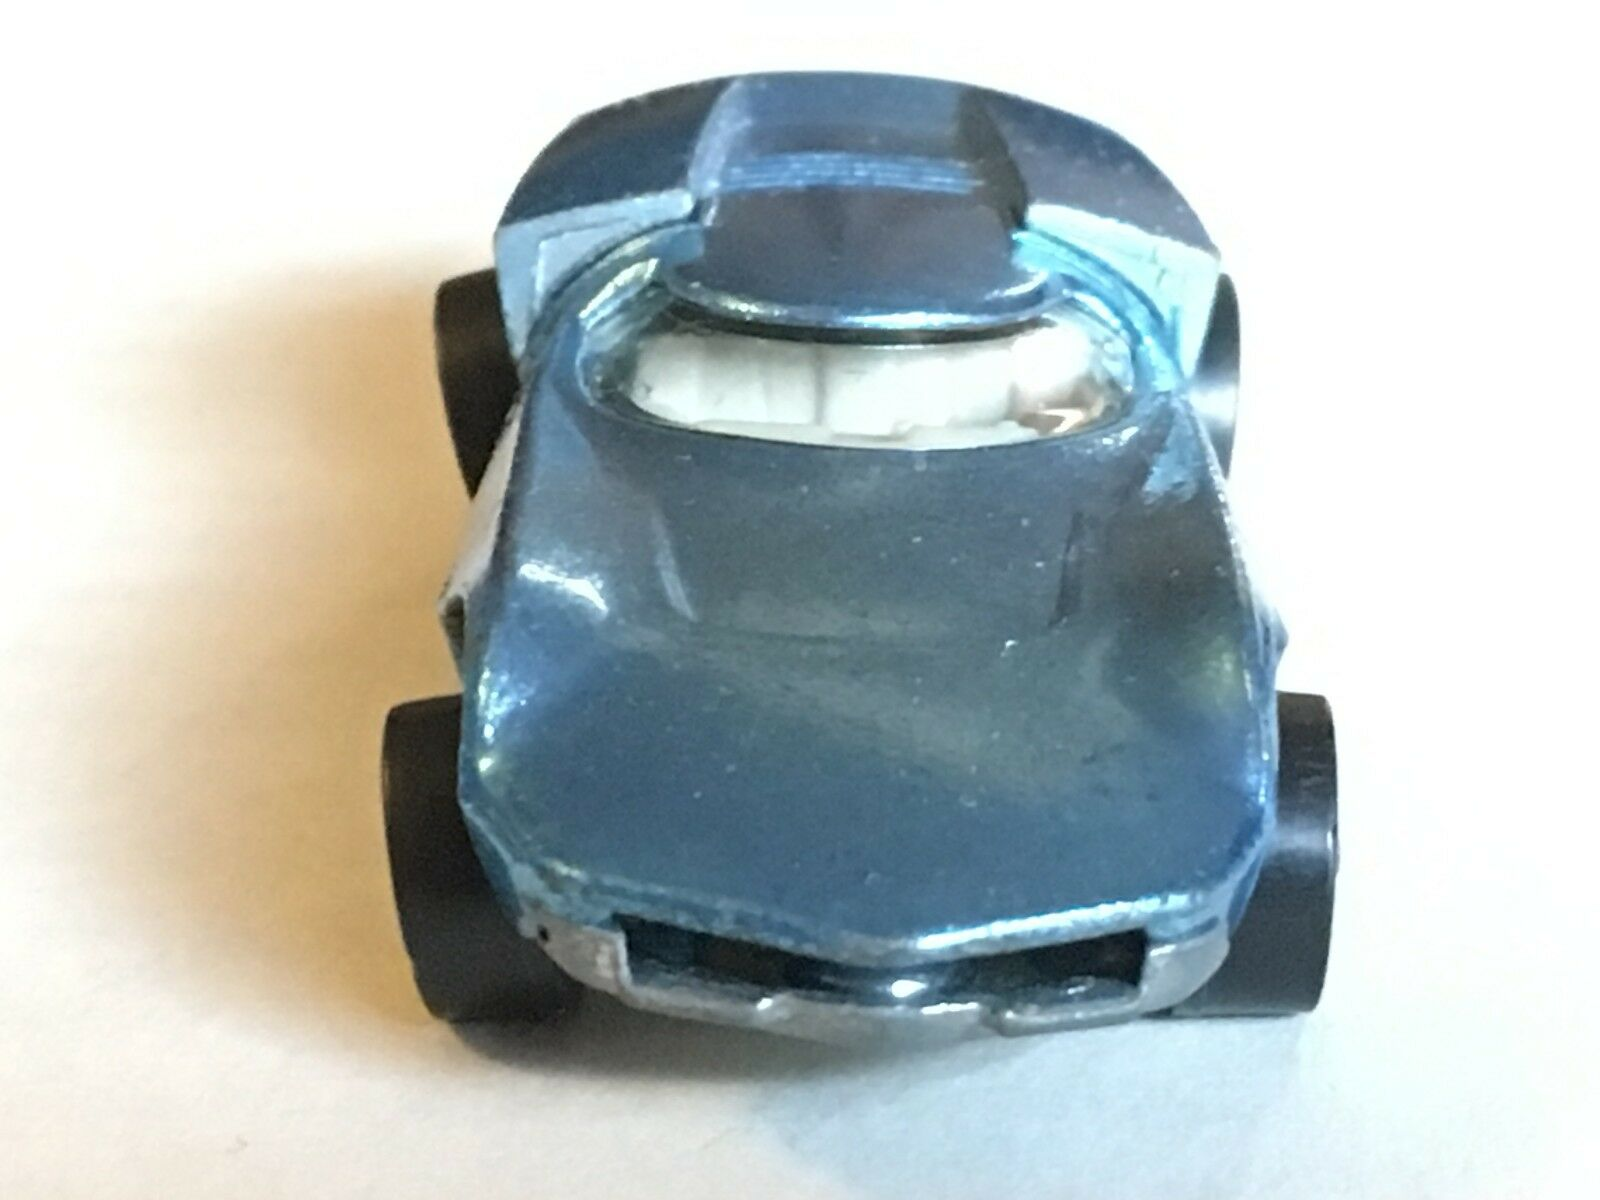 Hot Wheels rotline1969 Turbofire Light Blau